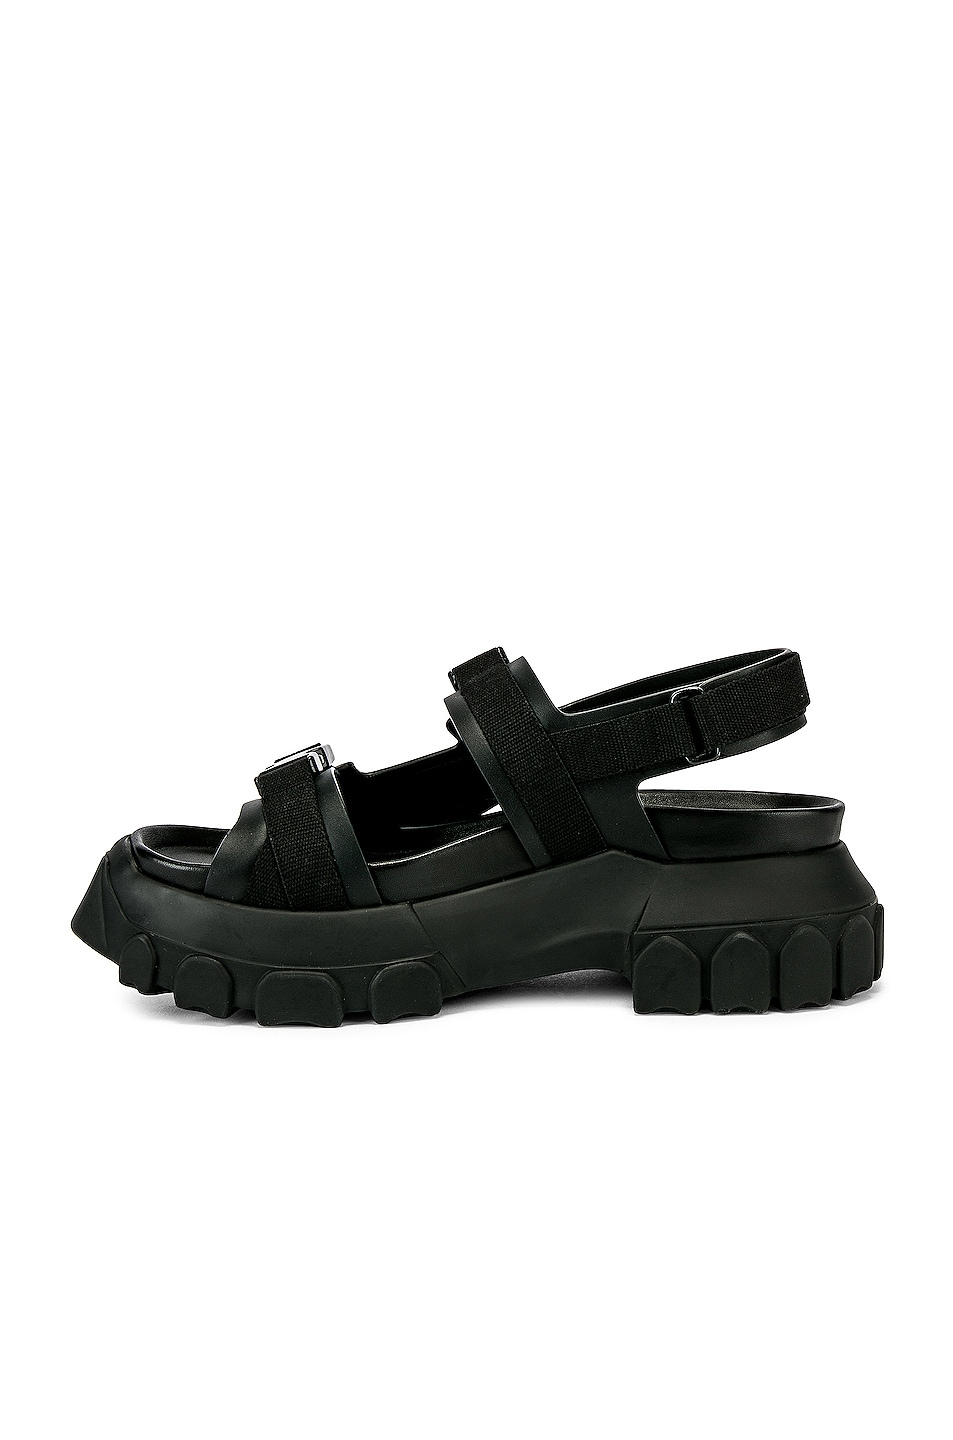 Image 5 of Rick Owens Tractor Sandals in Black